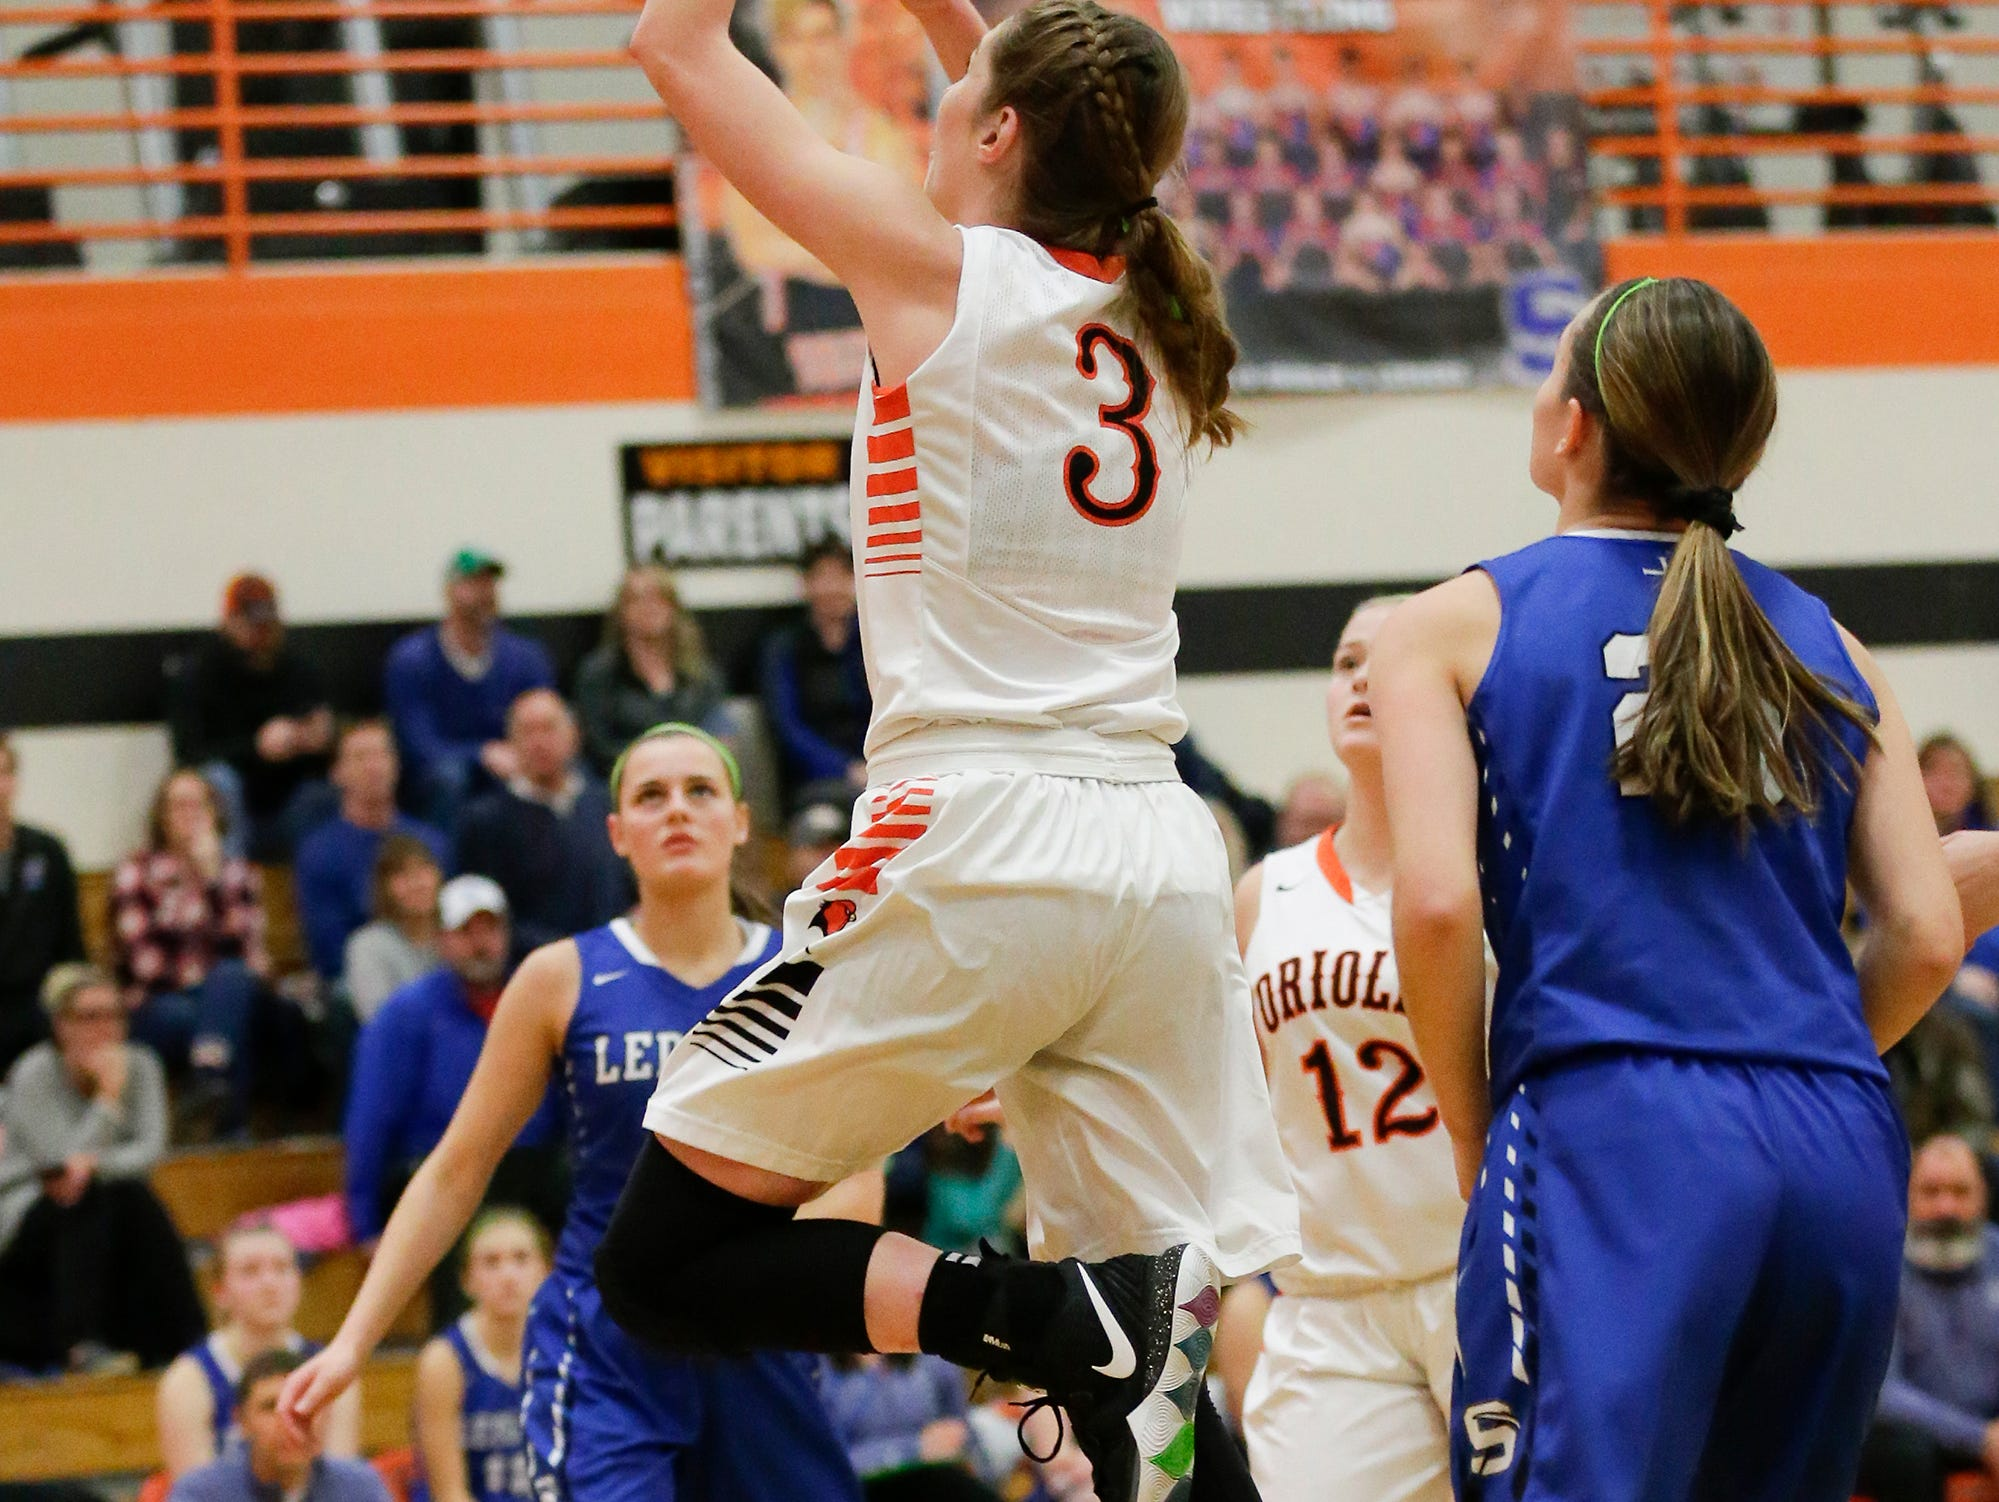 North Fond du Lac High School girls basketball's  Rebecca Kingsland goes up for a basket against St. Mary's Springs Academy during their game Friday, January 4, 2019 in North Fond du lac. Doug Raflik/USA TODAY NETWORK-Wisconsin